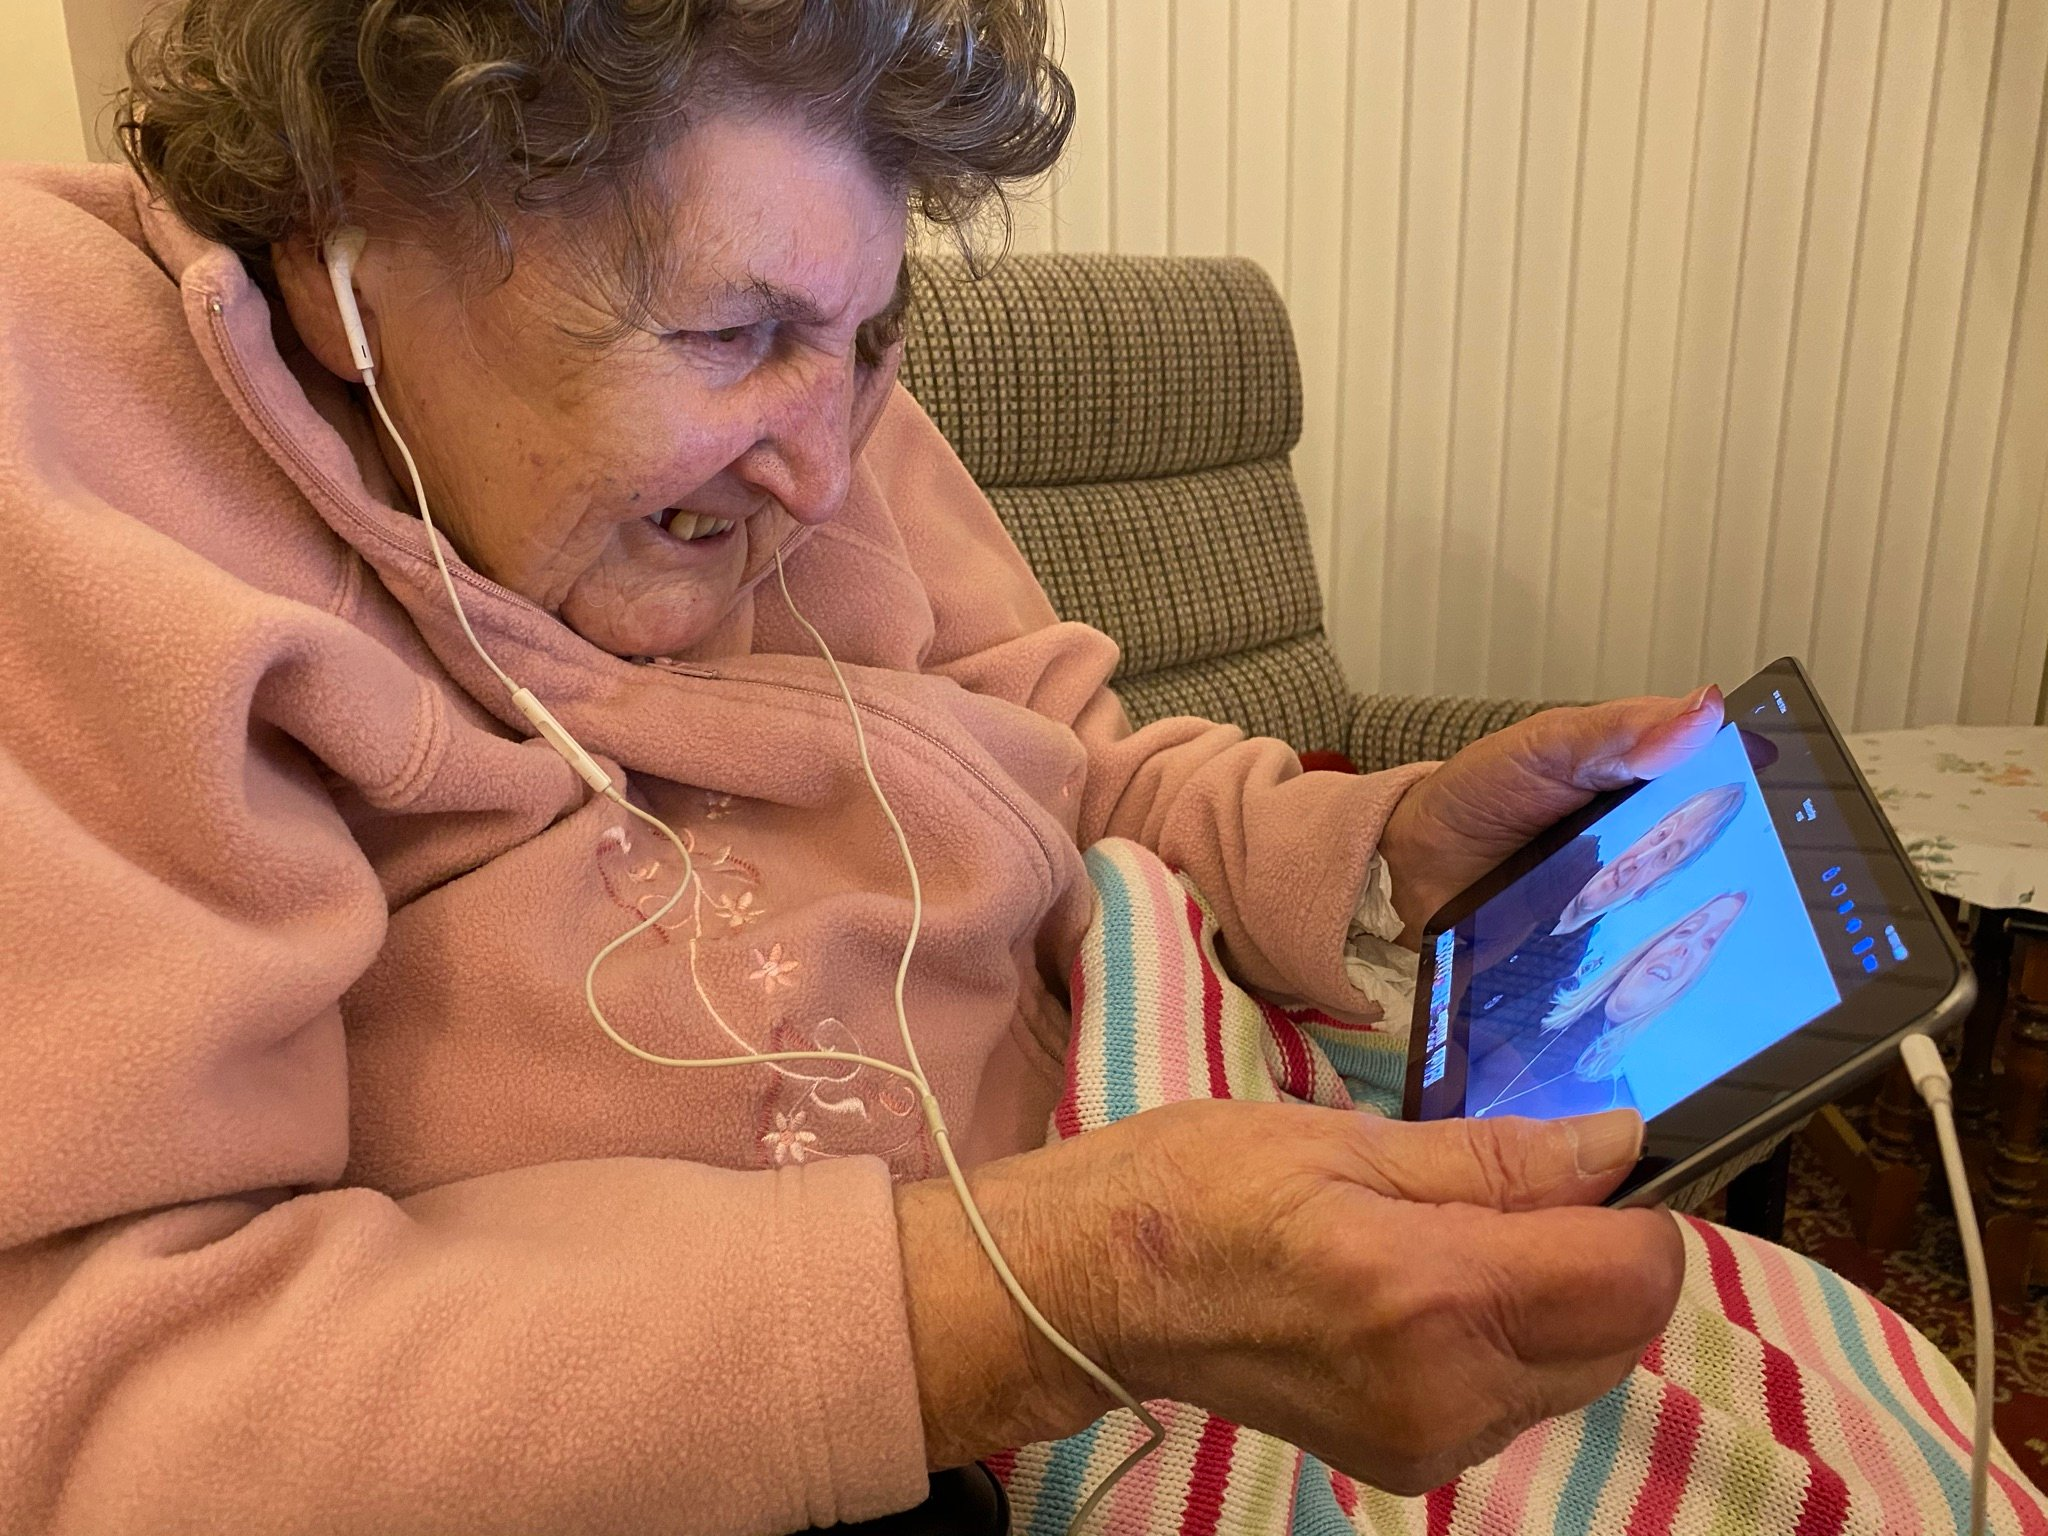 Watching Videos From Loved Ones - 16.02.20